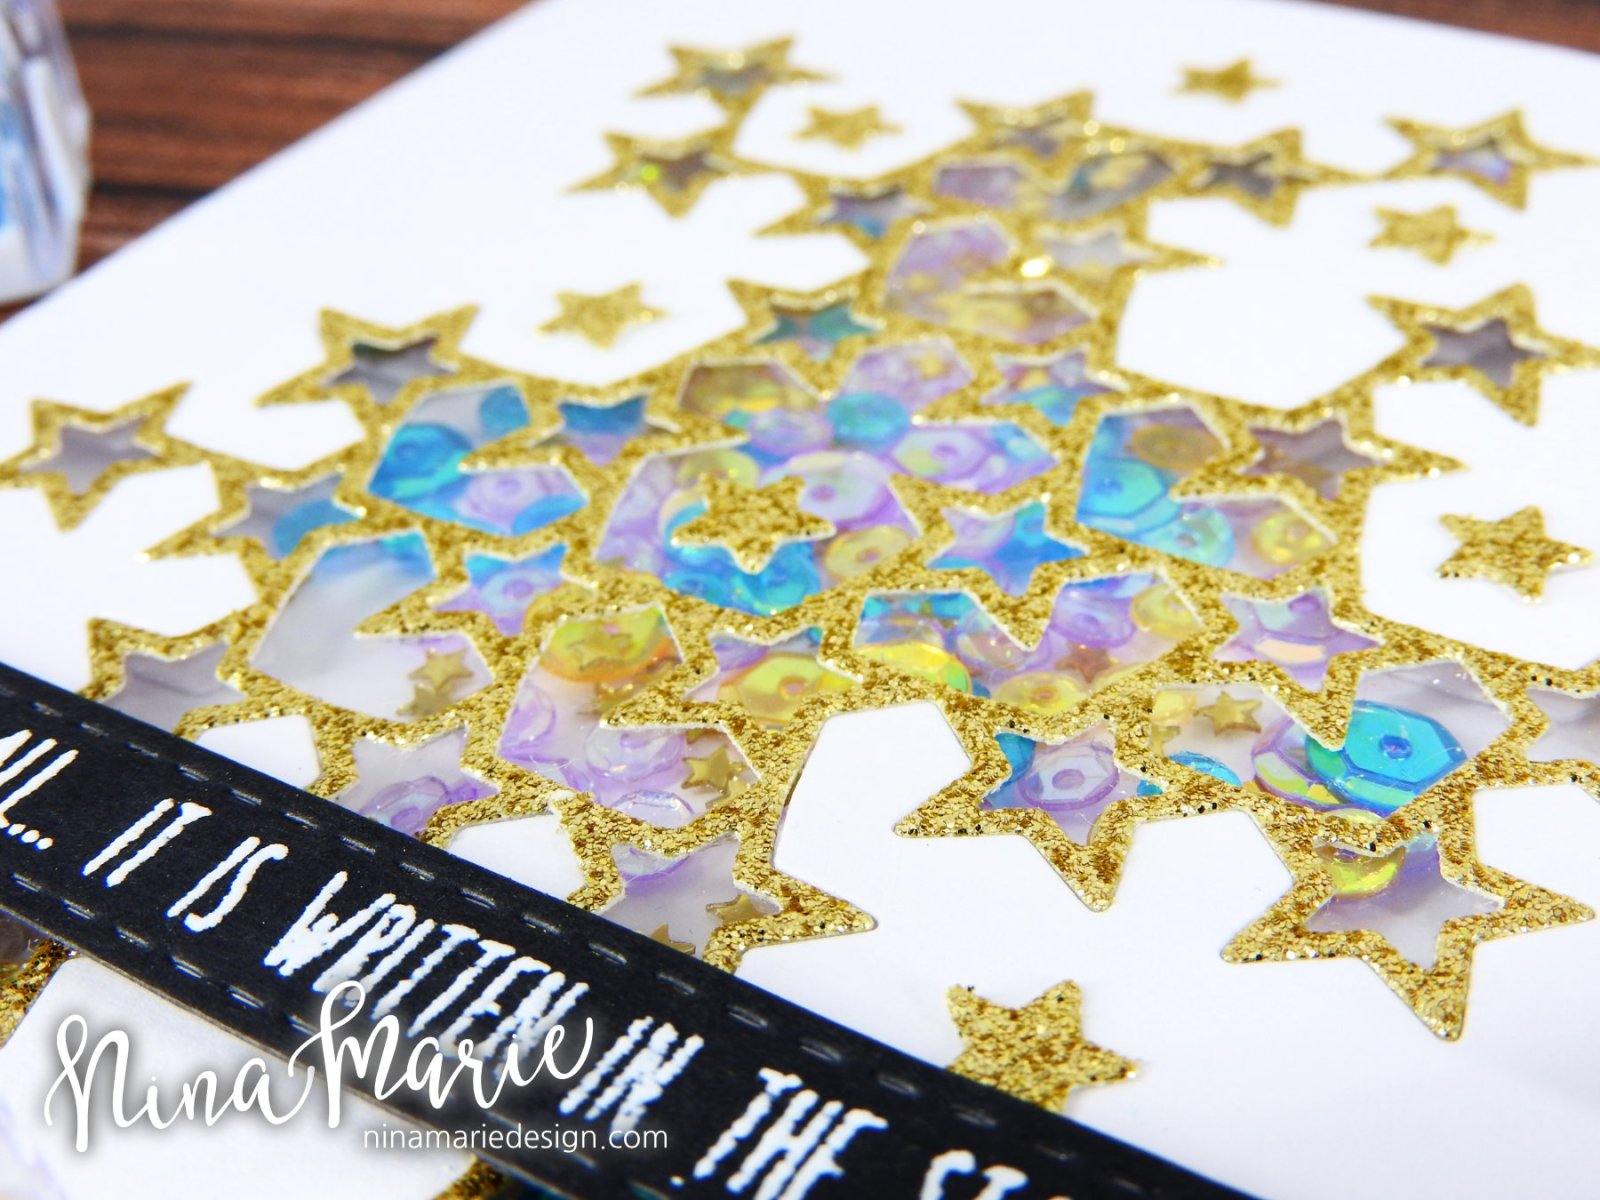 Glitter Die Cut Shaker + Simon's Among the Stars Release_2